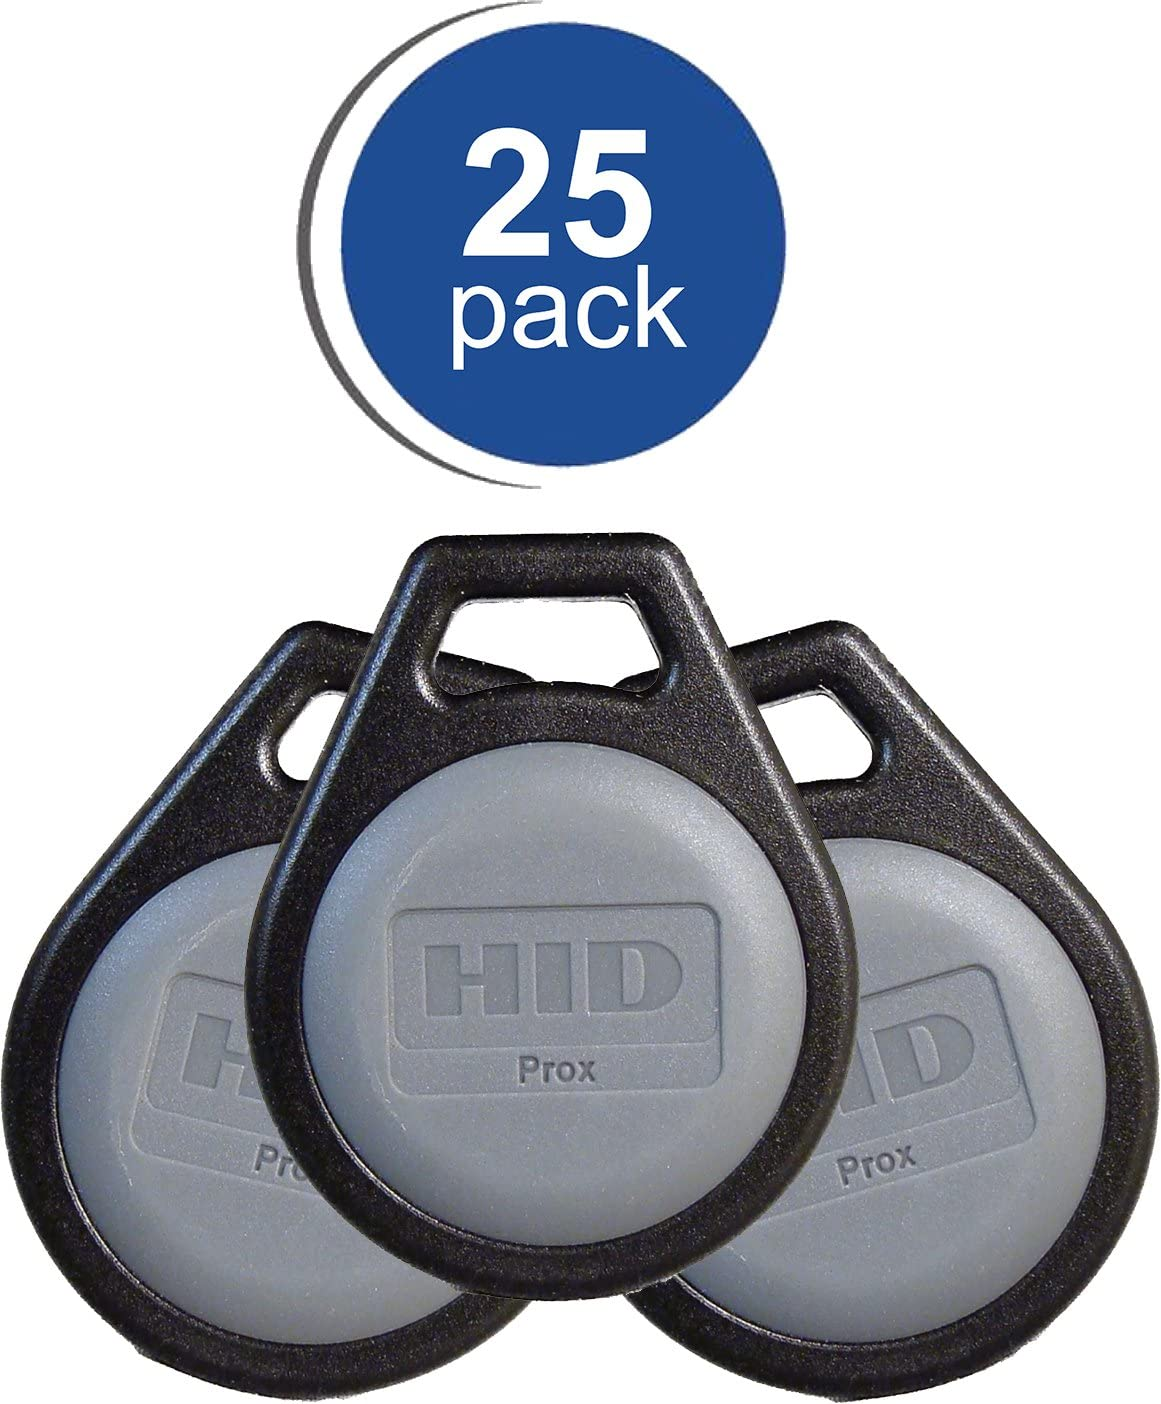 10 Pack RapidPROX Proximity Key Fobs for Access Control H10301 Standard 26Bit Format.